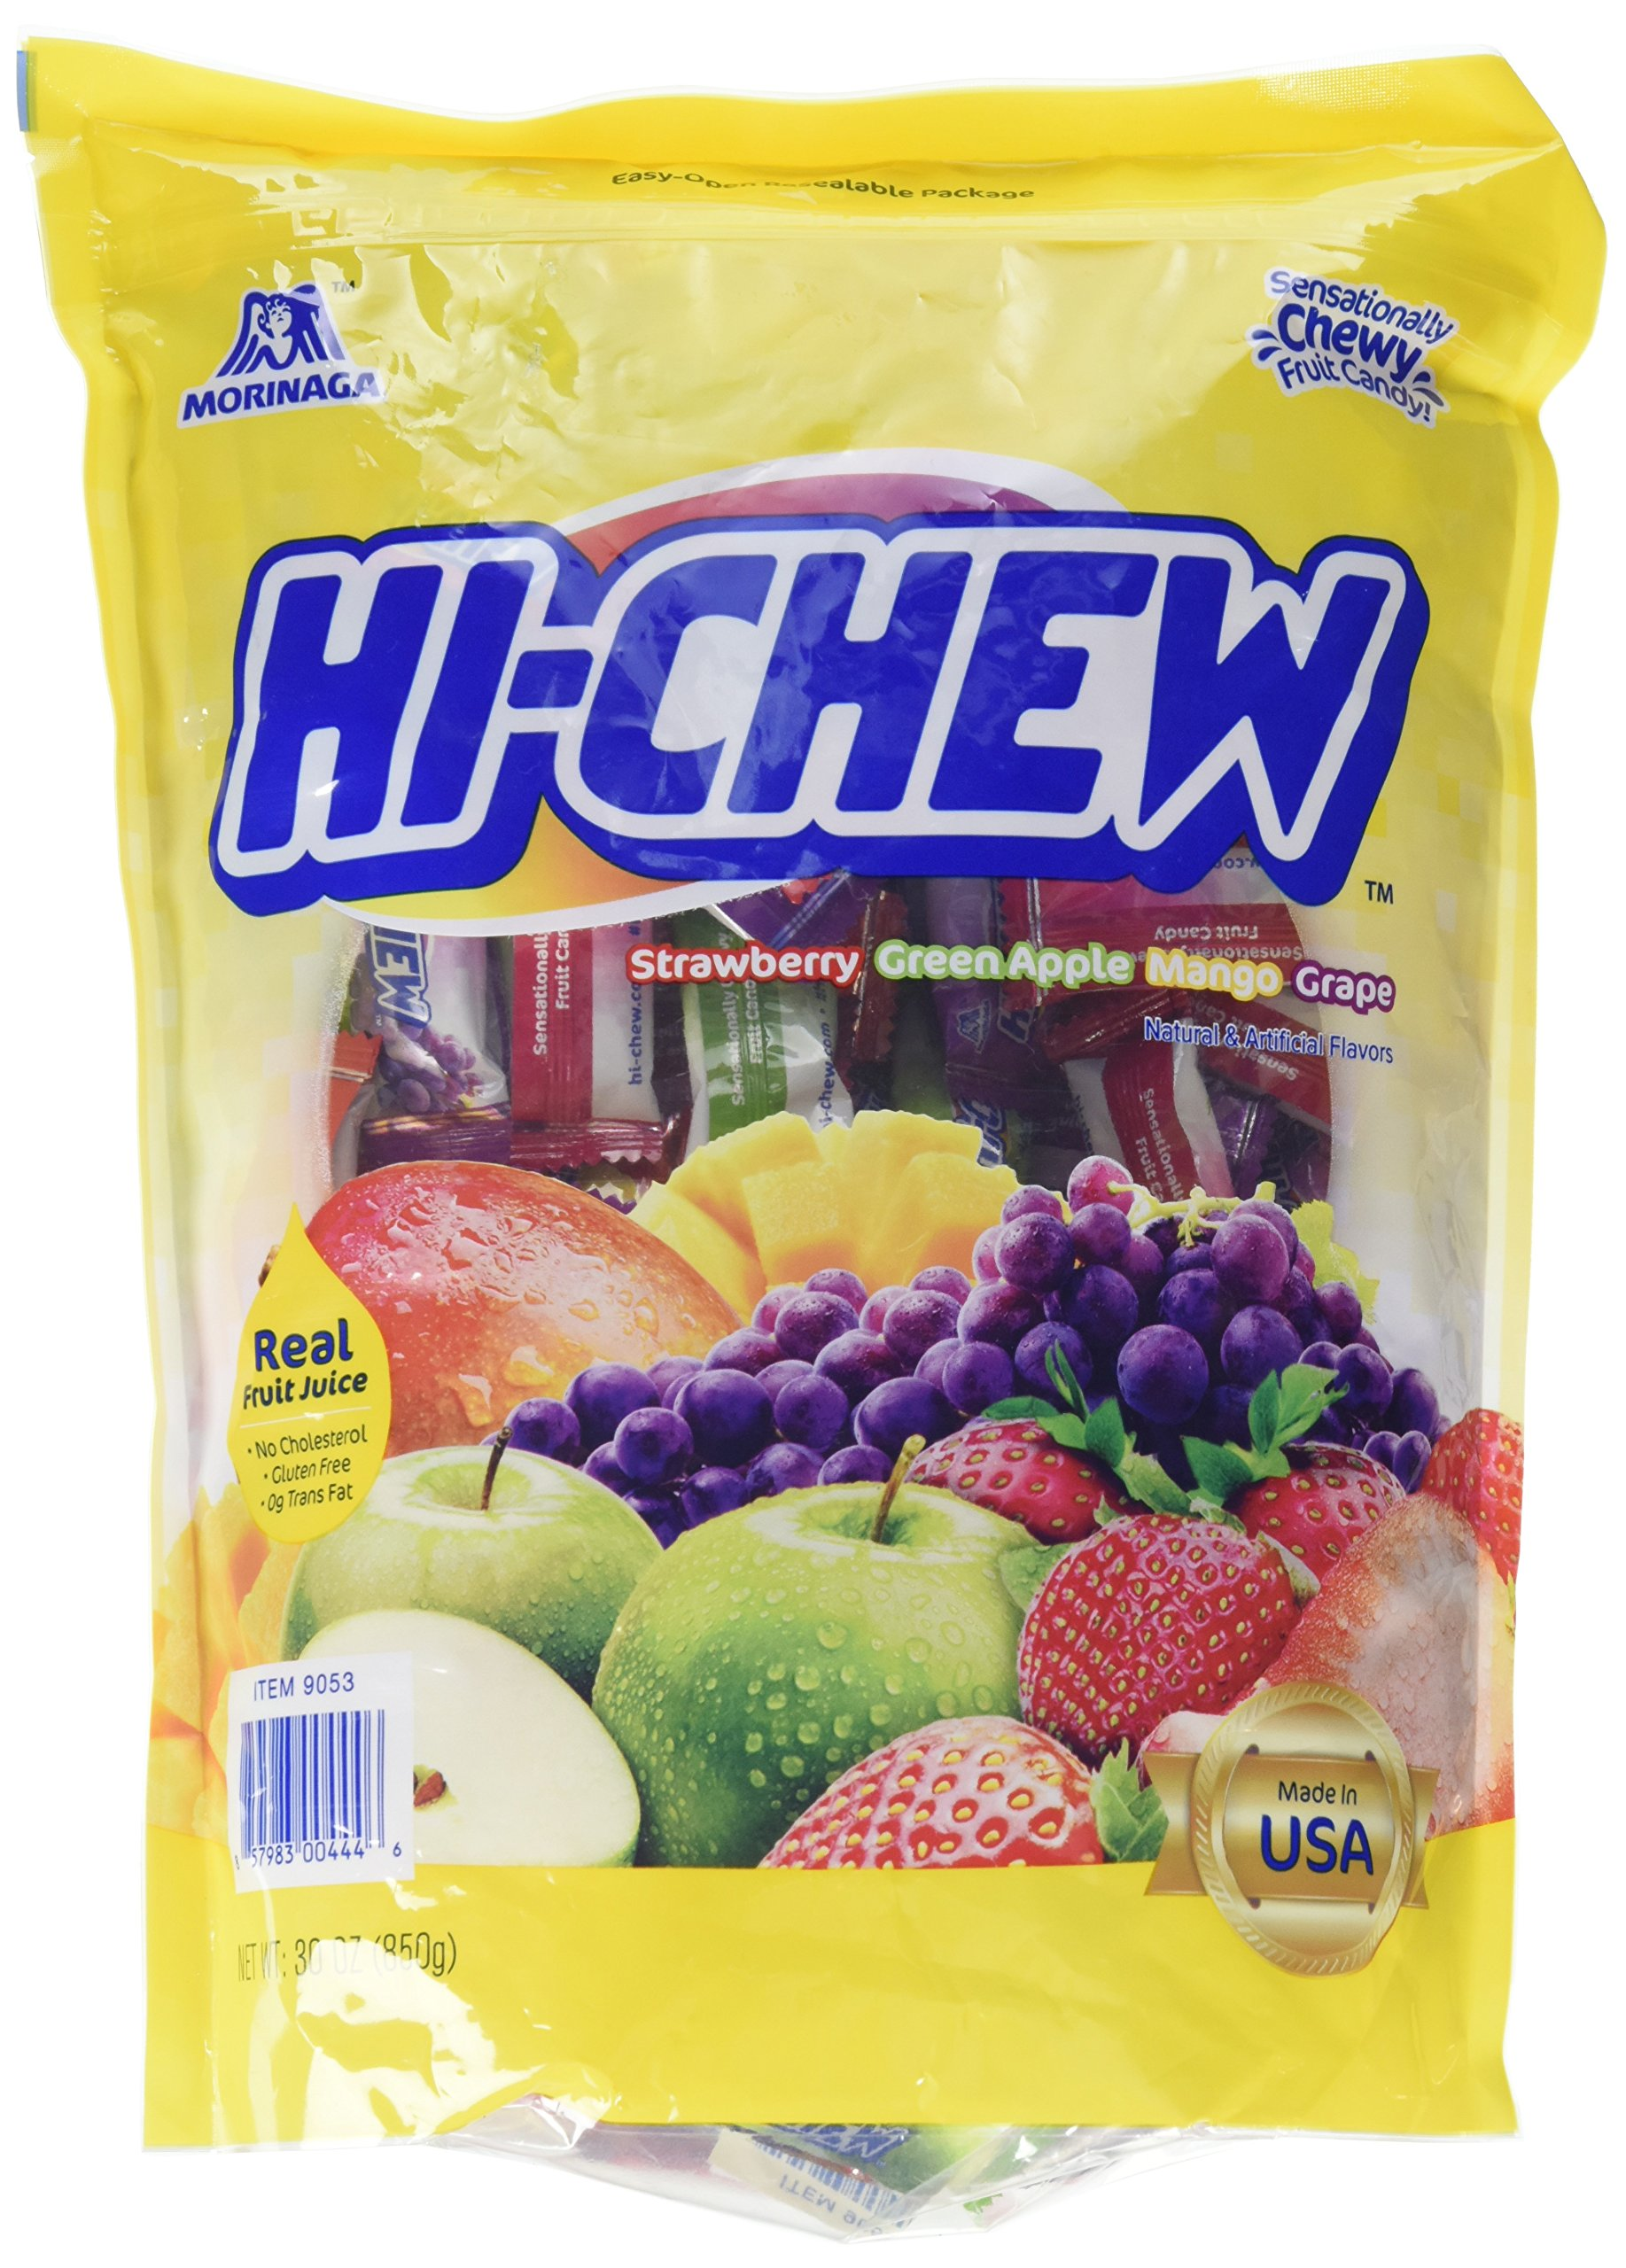 Extra-large Hi-Chew Fruit Chews, Variety Pack, (165+ pcs) - 1 bag by Free Shipping Tigers